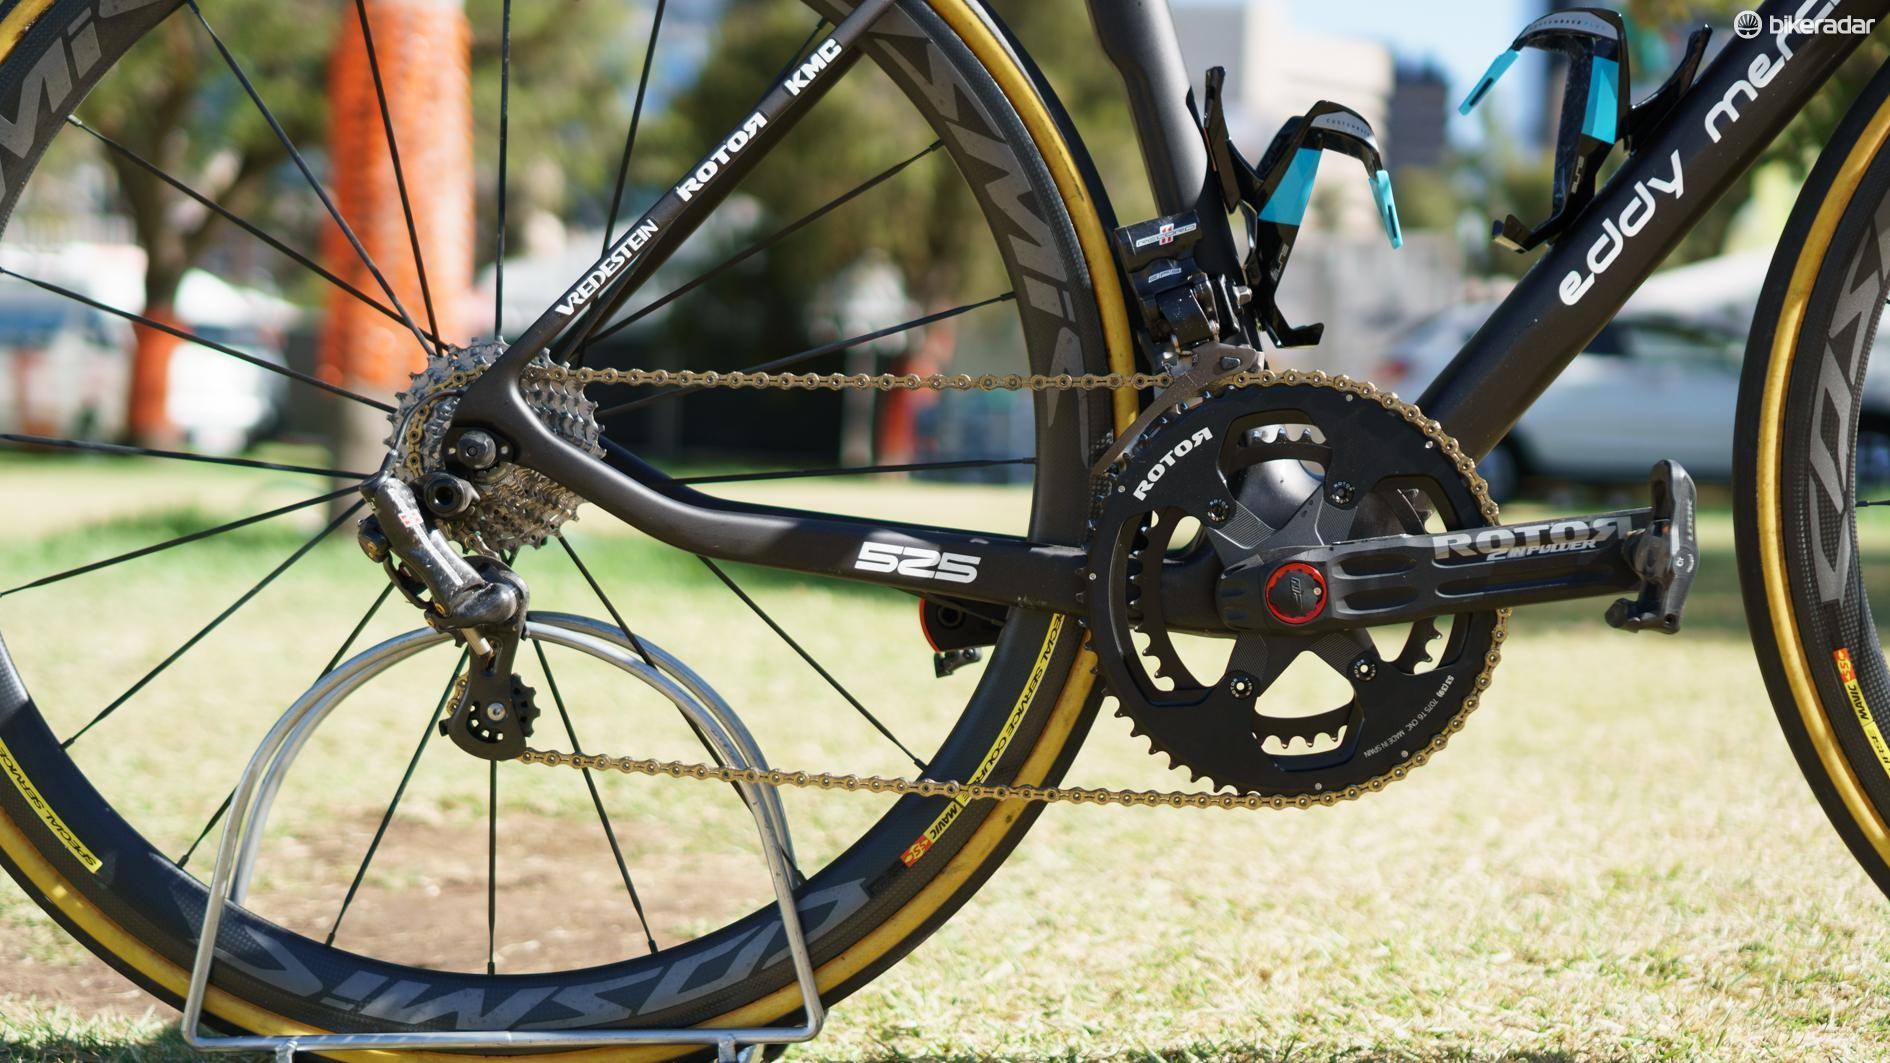 The bike uses a mix of Rotor, Campagnolo, Shimano and KMC components for the drivetrain